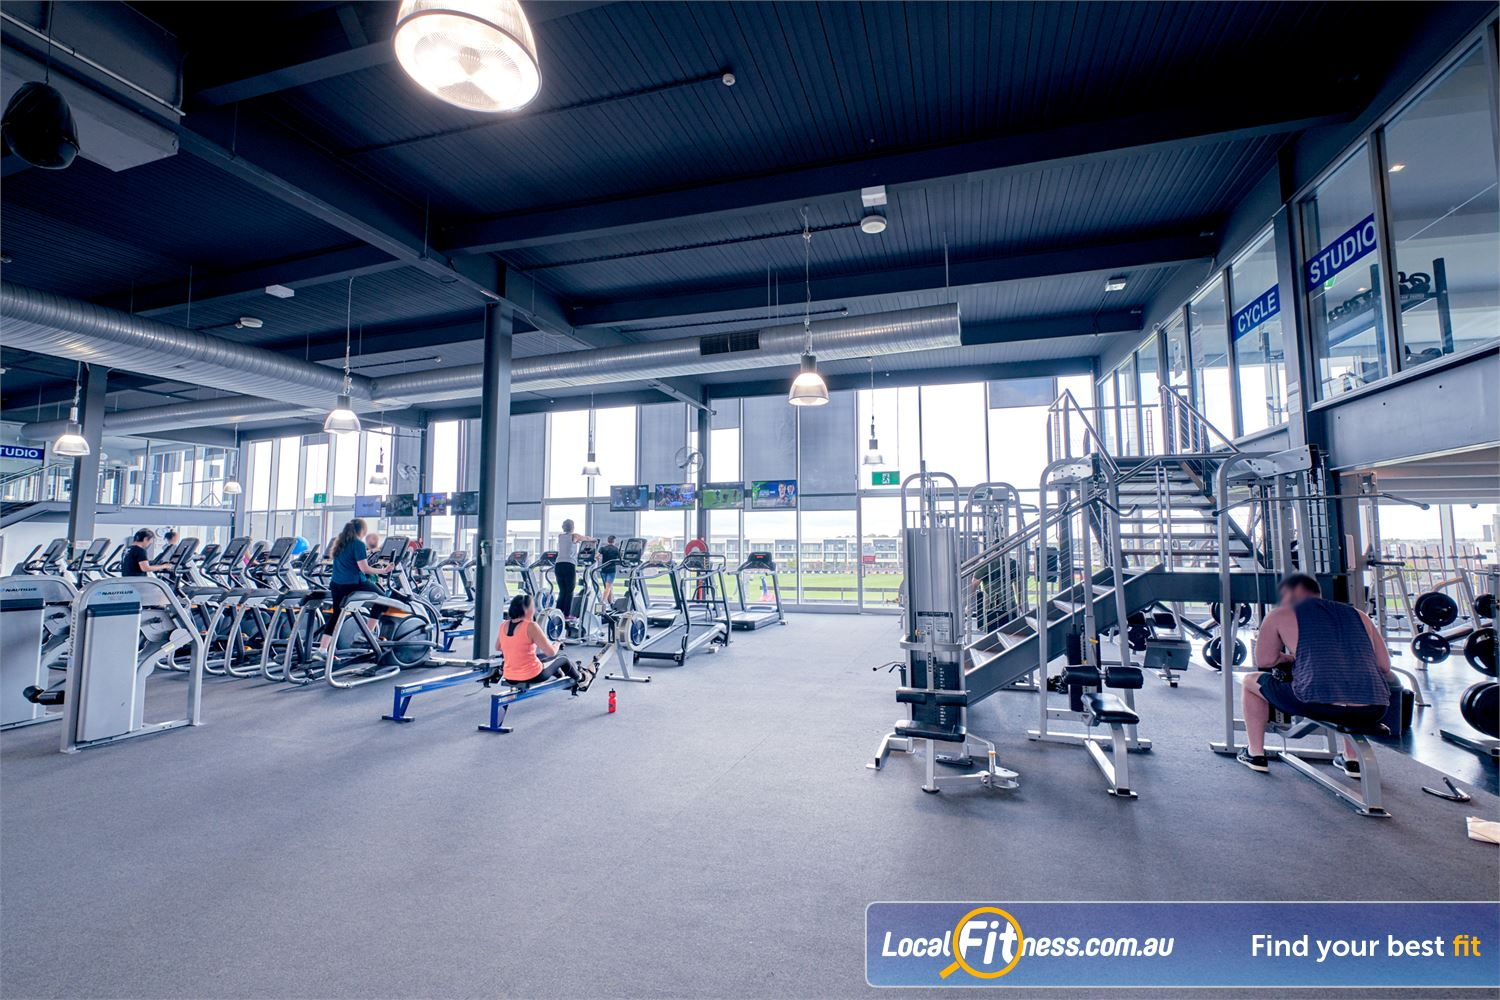 Goodlife Health Clubs Waverley Park Mulgrave Our large open-space Waverley Park gym is open 24/7.